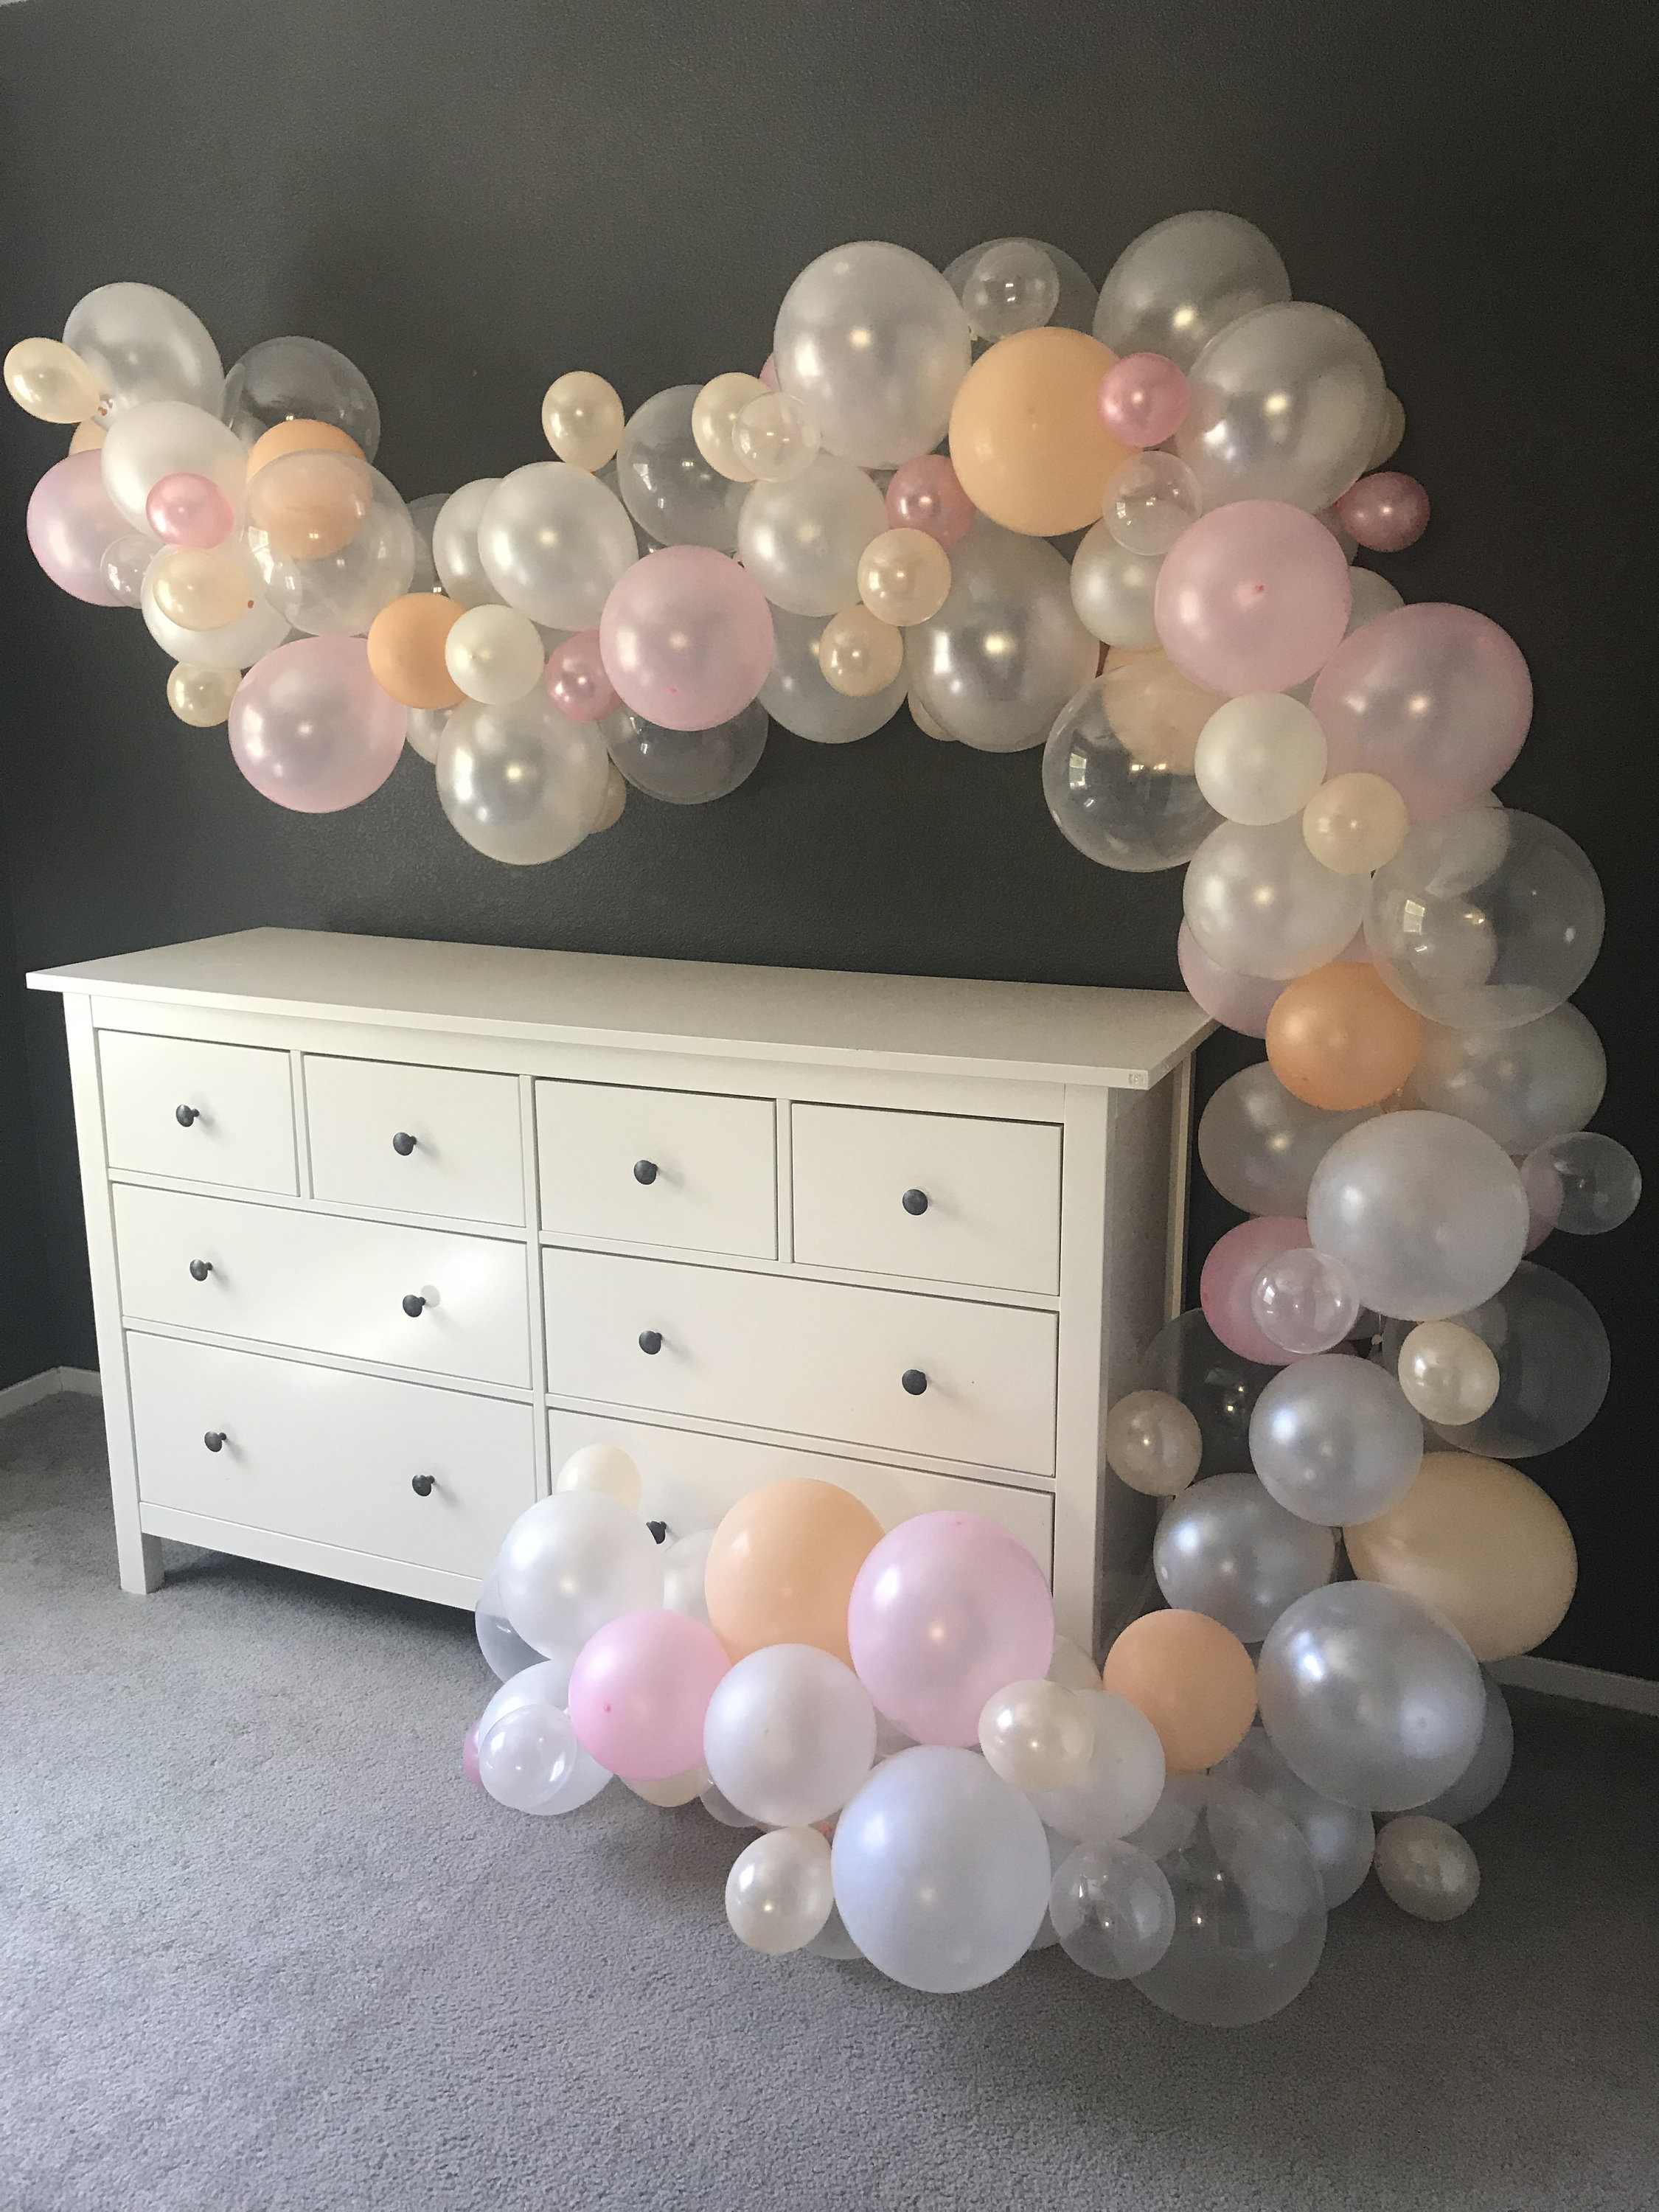 Diy Balloon Arch Kit 15 Ft Bridal Shower Baby Shower Birthday Party Decoration Balloon Decoration All Events Prints Party Decor